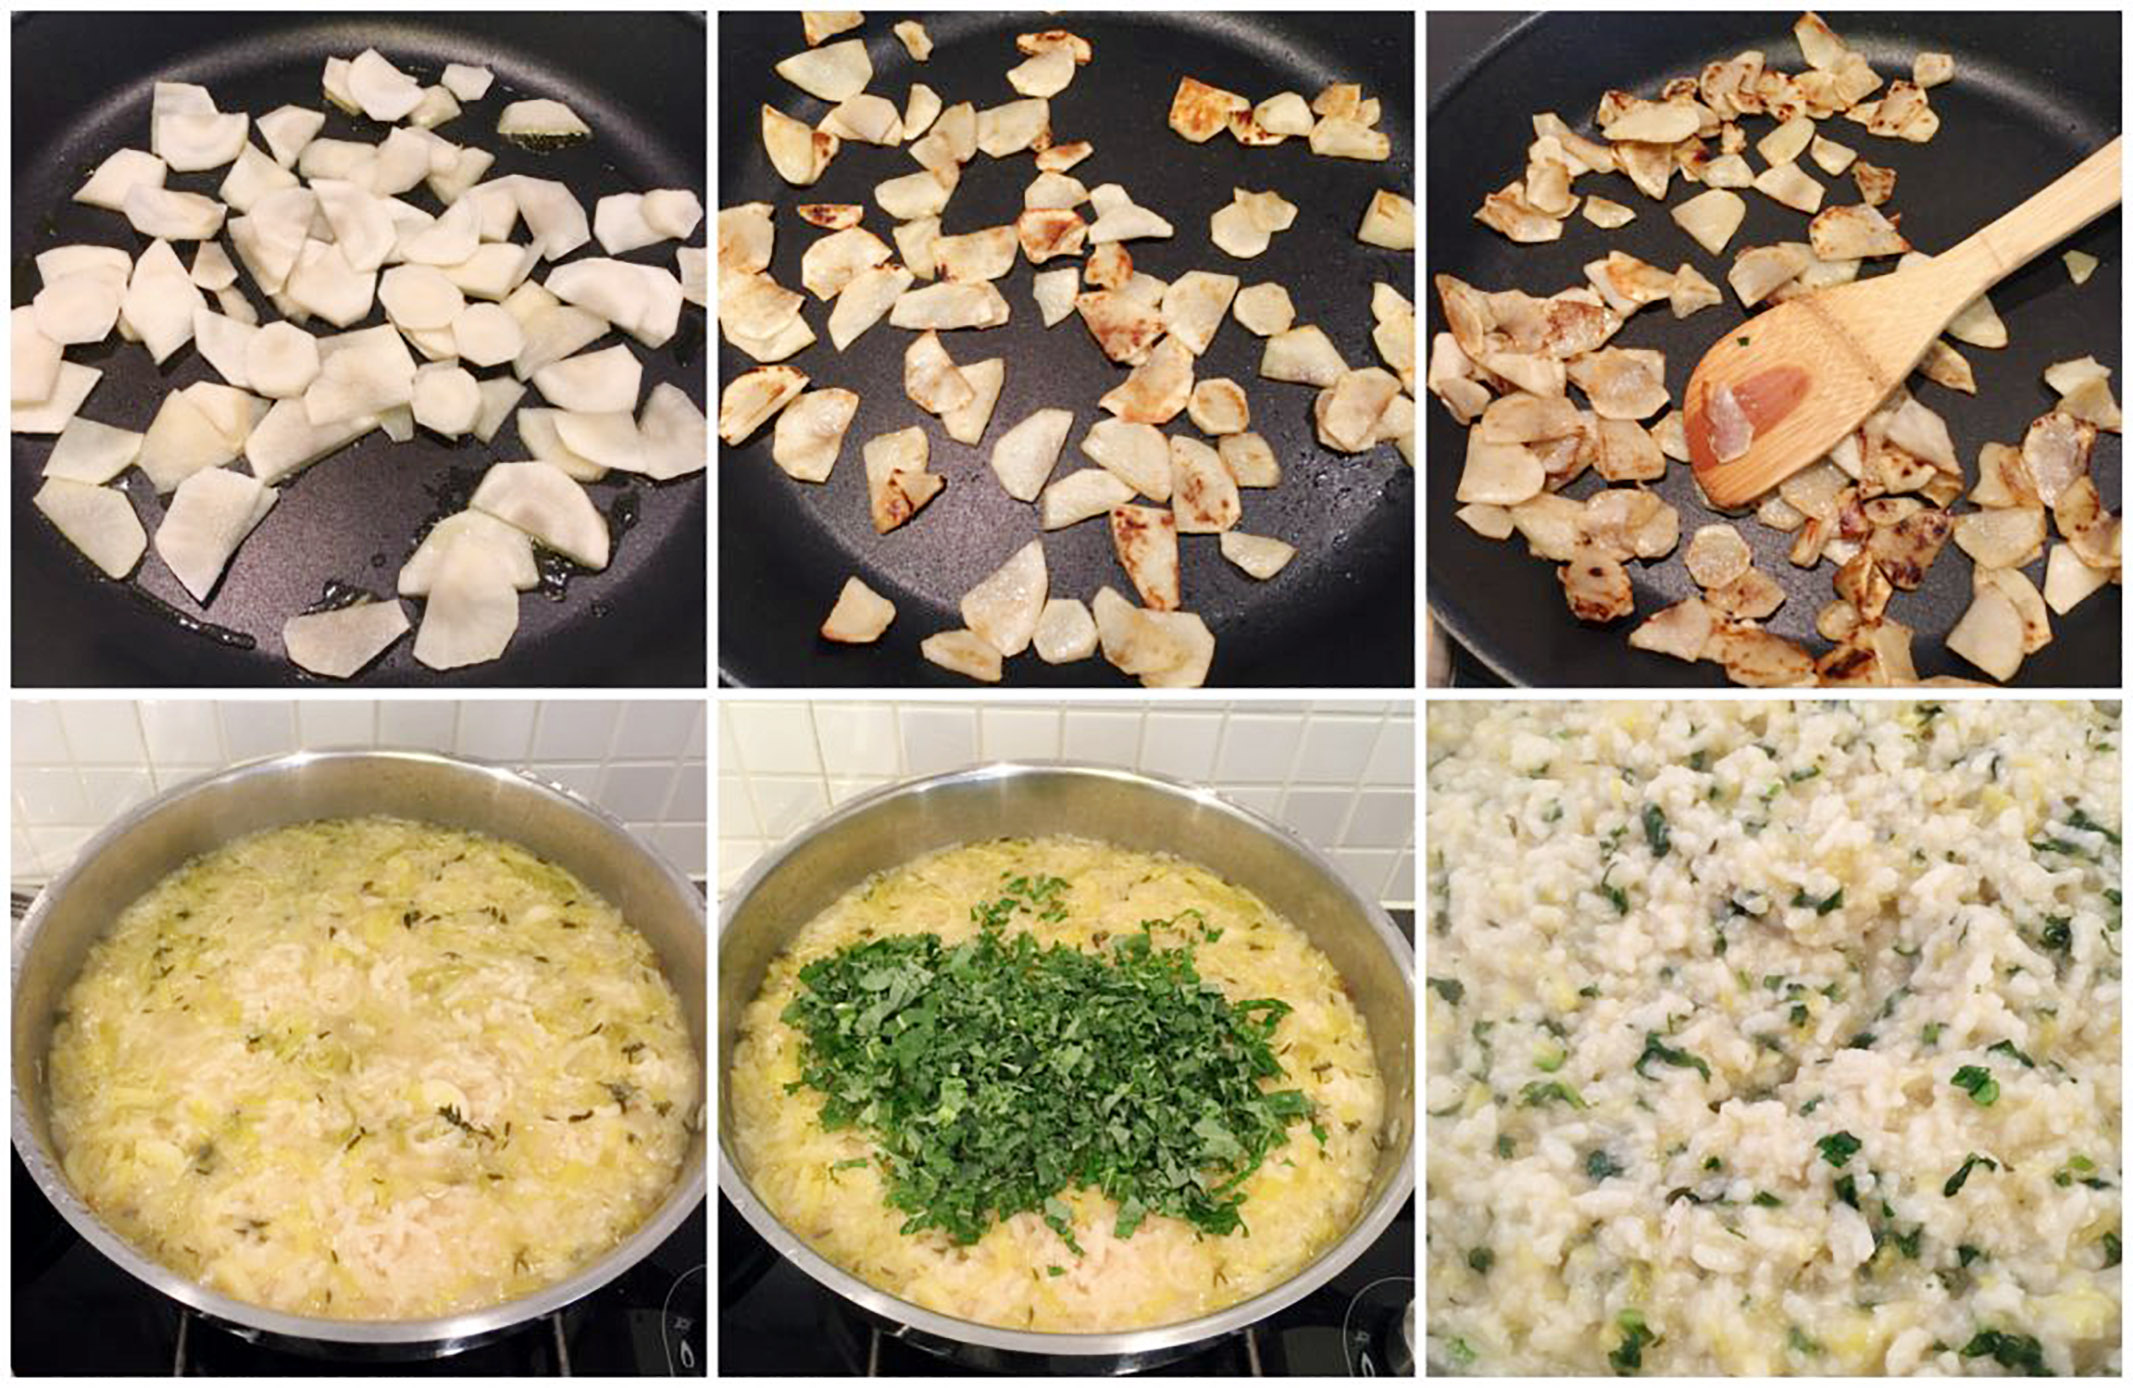 Low Histamine Jerusalem Artichoke Risotto in the making! part 2